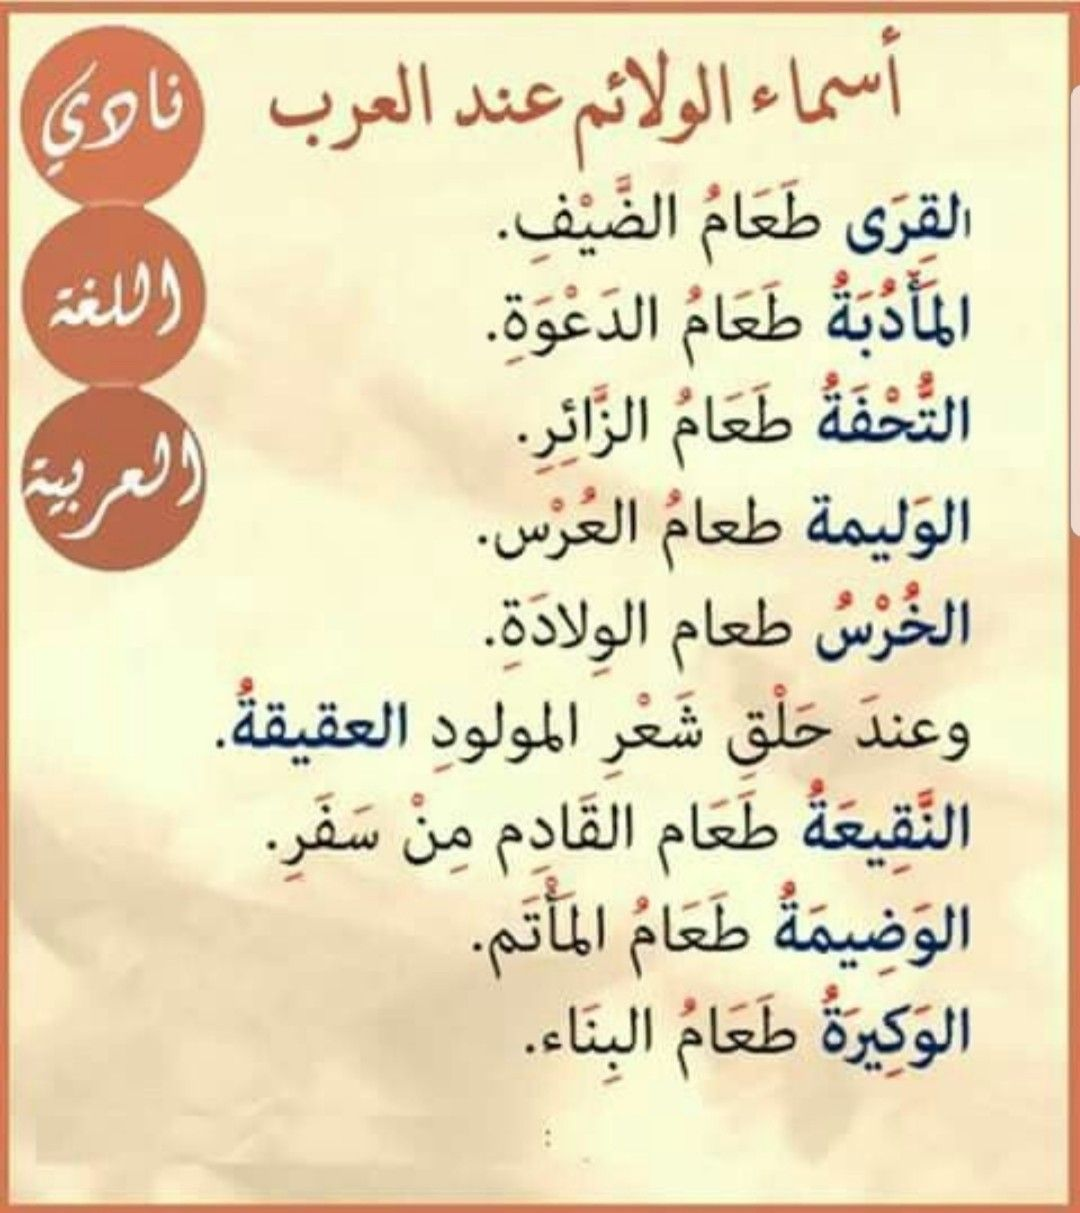 Pin By صآحبهه الليـل On معلومات عامه لغه عربيه Life Lesson Quotes Words Quotes Words